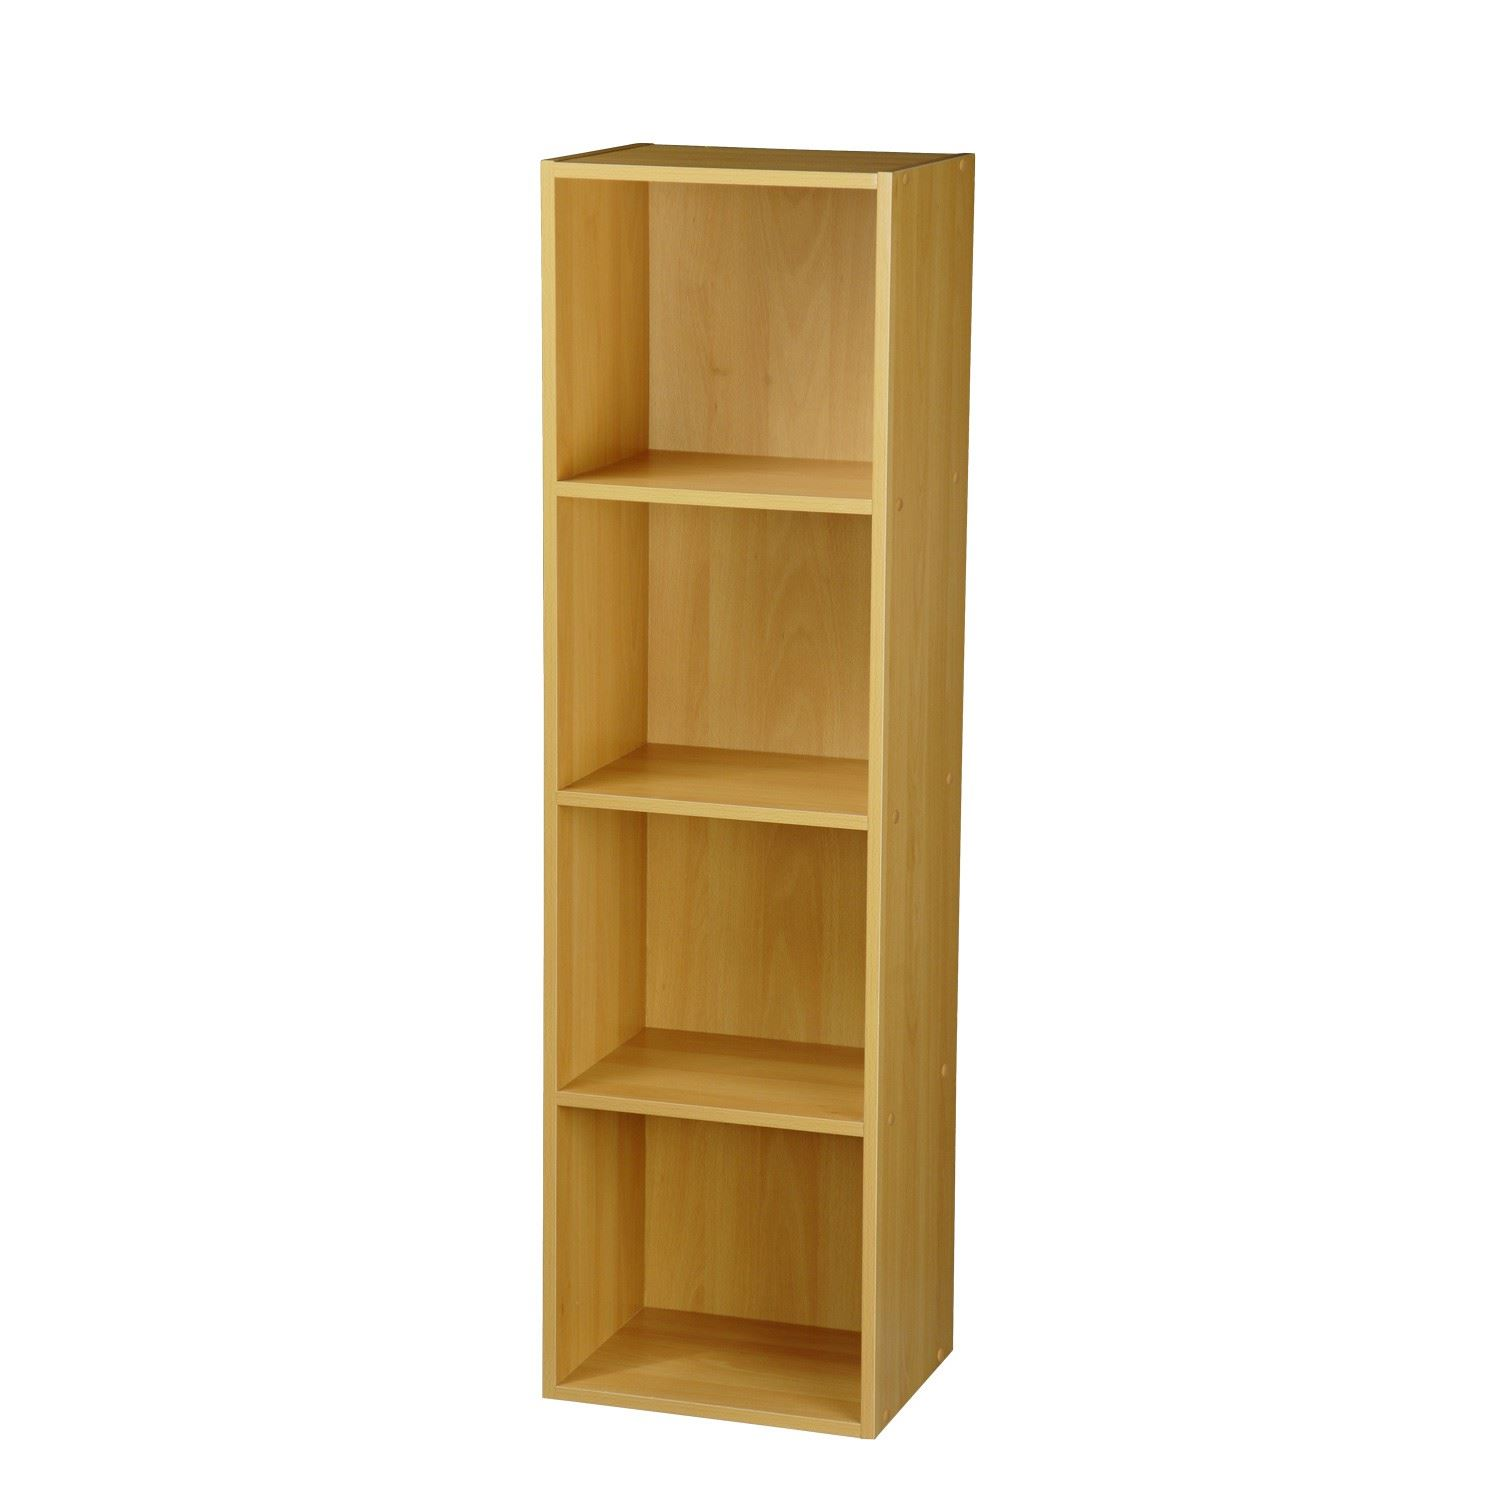 2 4 Tier Wooden Bookcase Shelving Bookshelf Storage Furniture Cube Display Unit Ebay